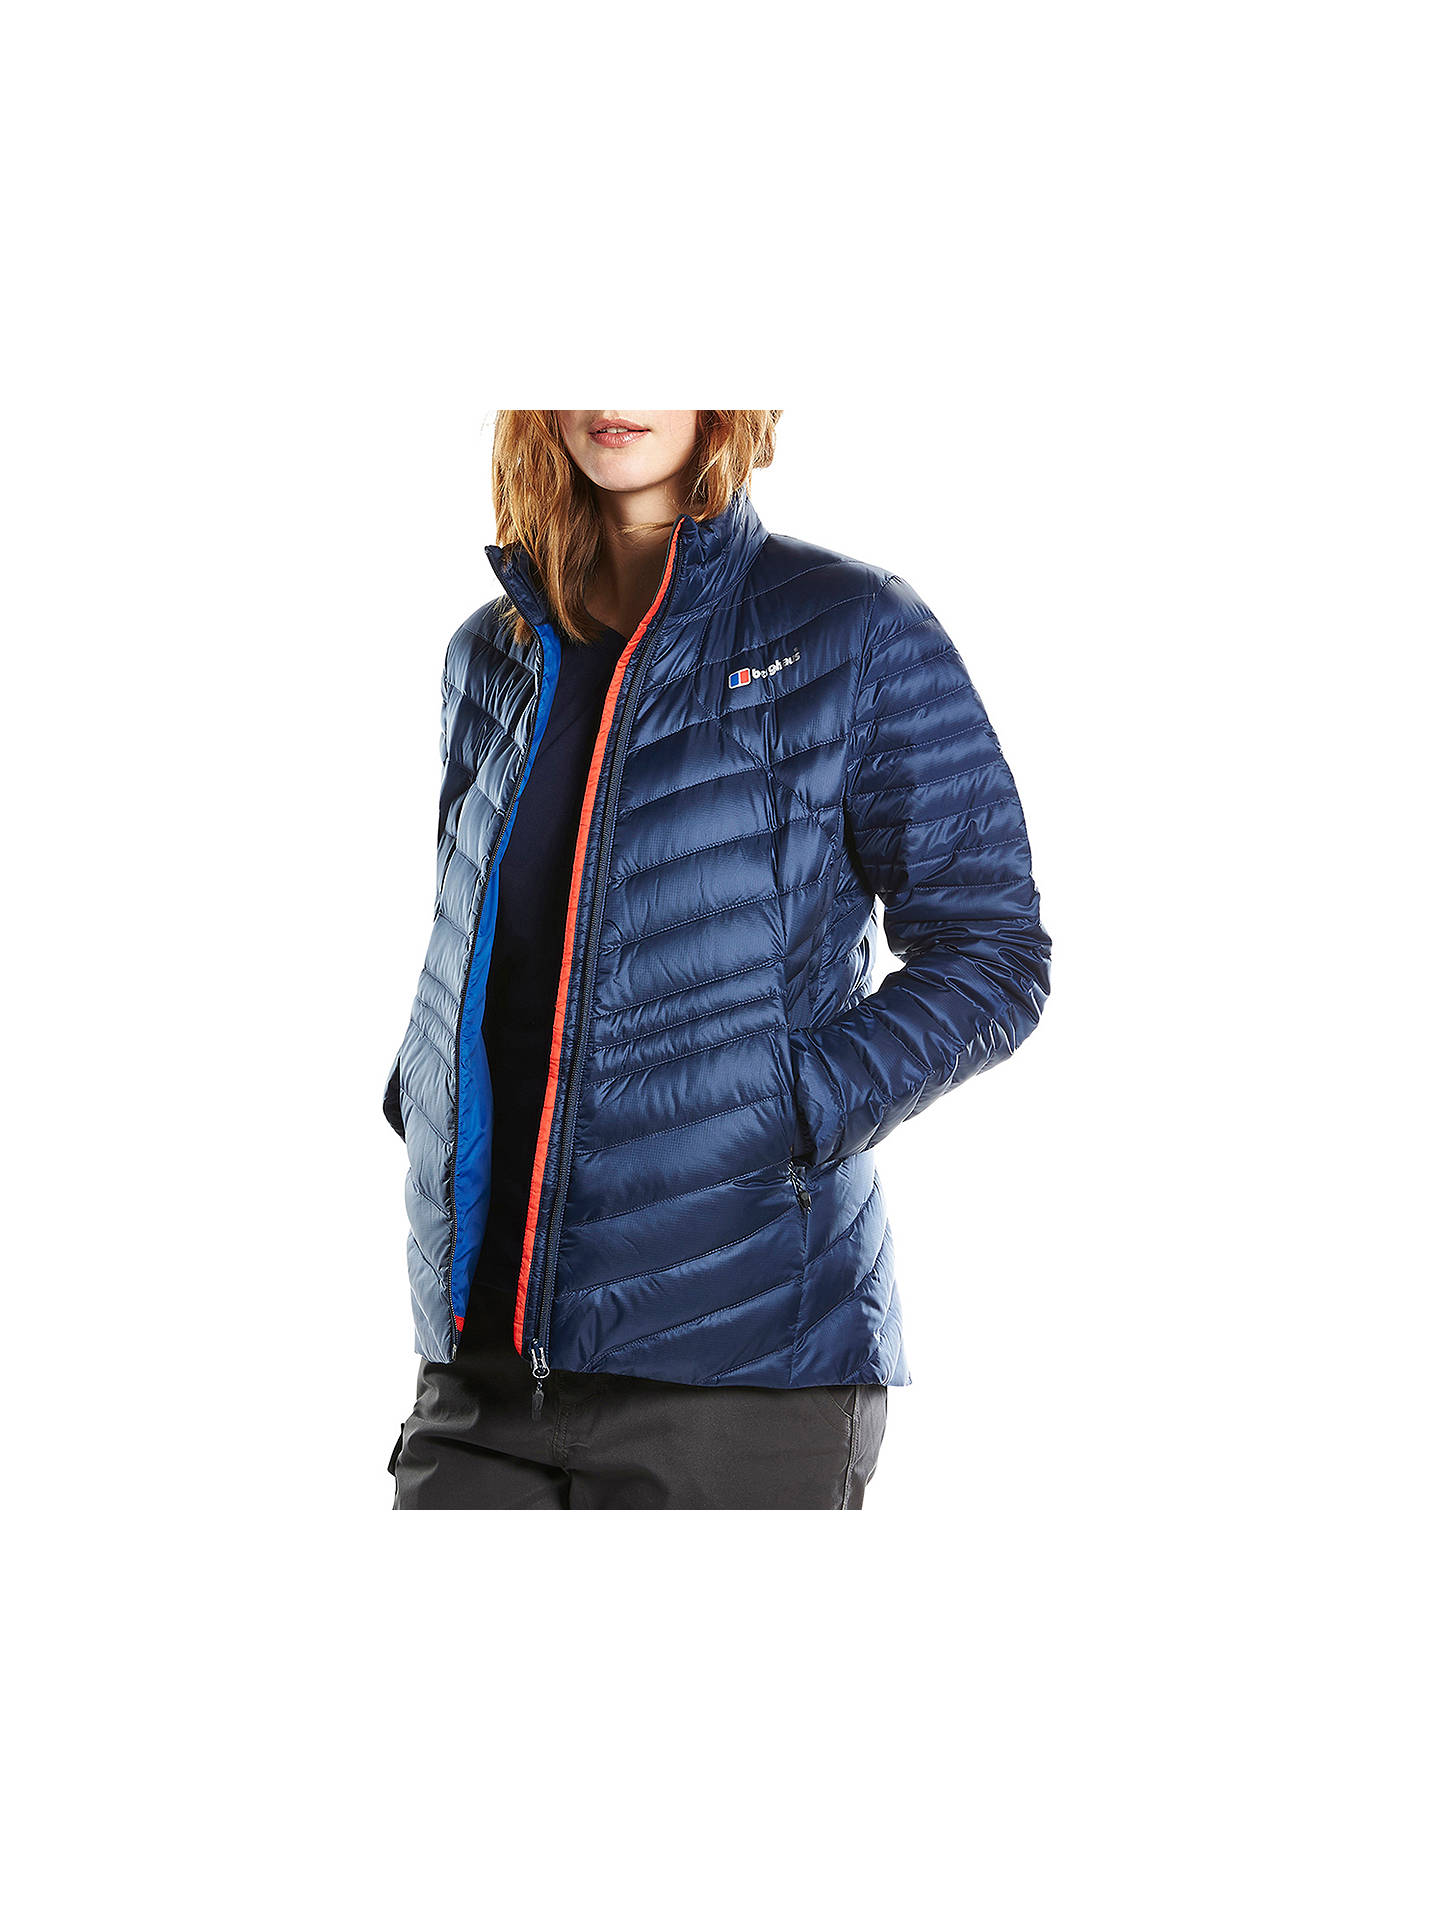 13114bc15 Berghaus Tephra Insulated Women's Down Jacket, Blue at John Lewis ...